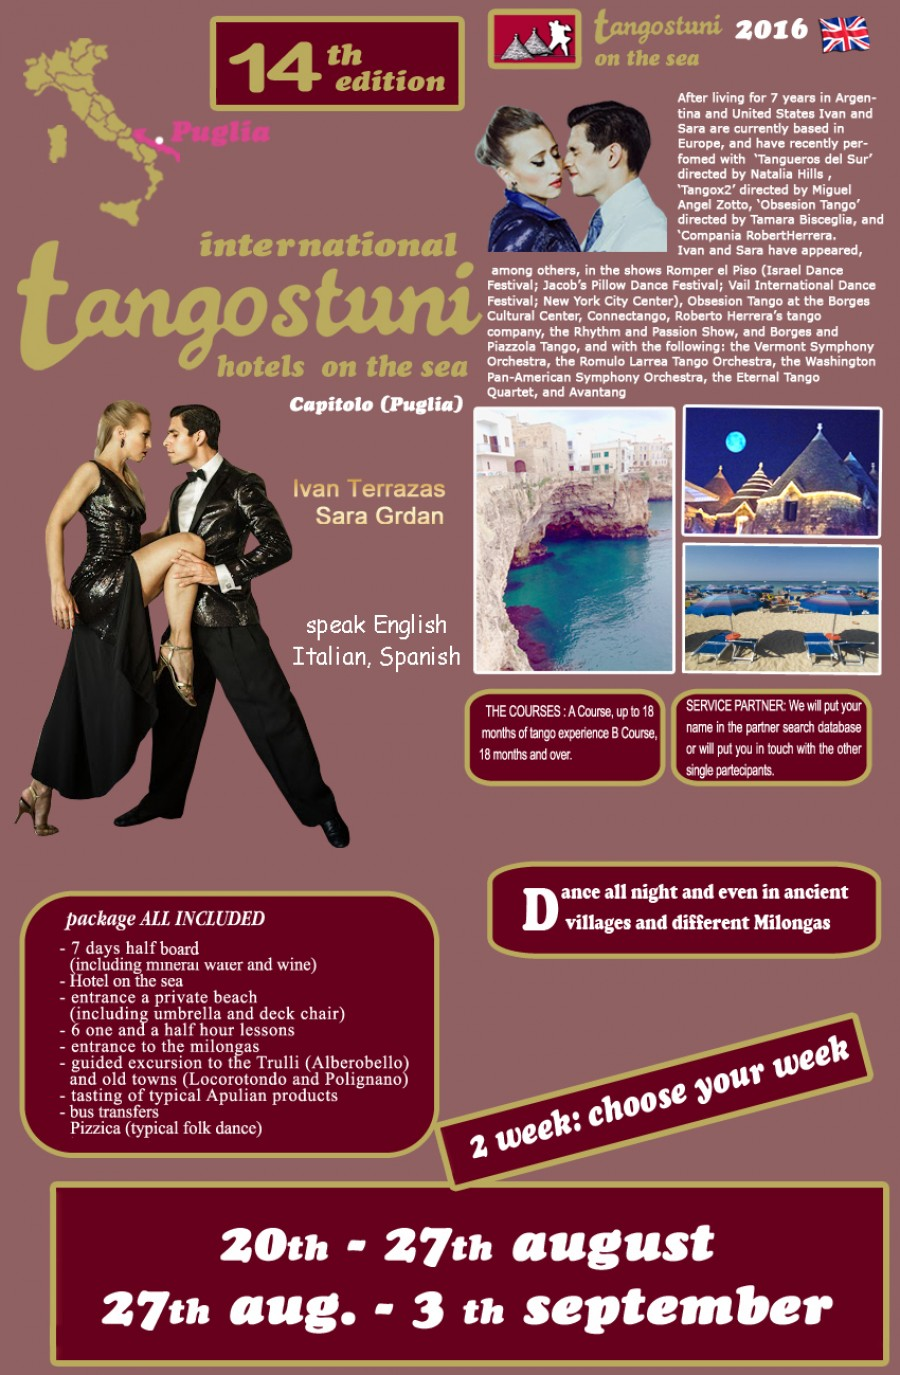 7 days of Tango 7 days of milonga Hotel on the Sea PUGLIA